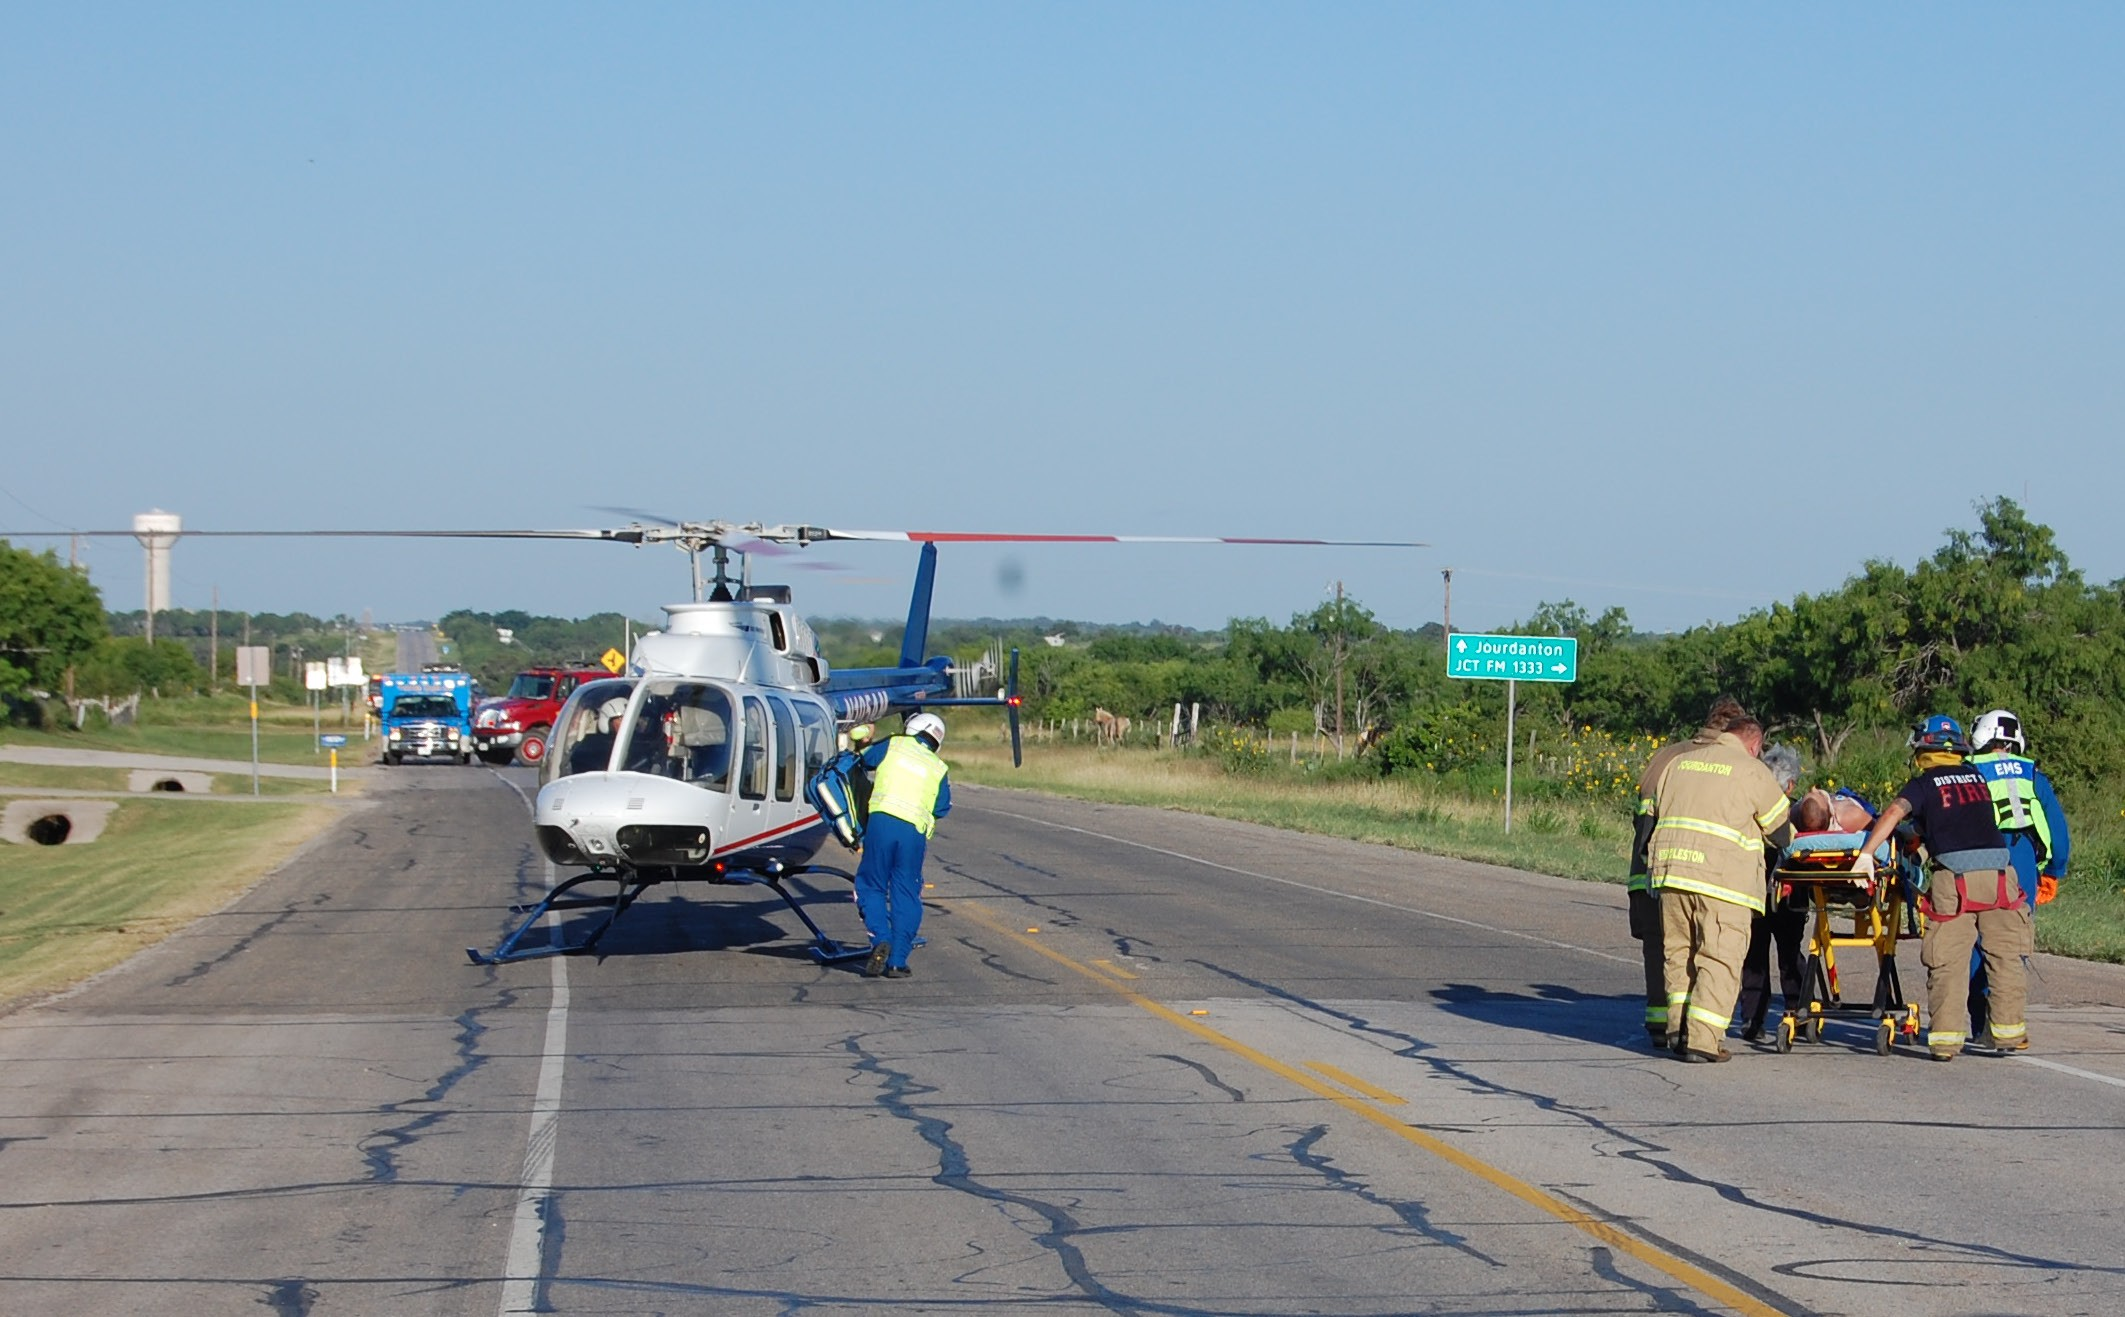 AirLife responded to a two-vehilcle collision on TuEsday, June 9 on SH 173. The driver of a car failed to yield right of way to a truck travelling westbound. The driver of the car was transported to University Hospital where he was in critical but stable condition.The wreck was investigated by Trooper Cantu with assistance of Trooper Waylon Rogers.